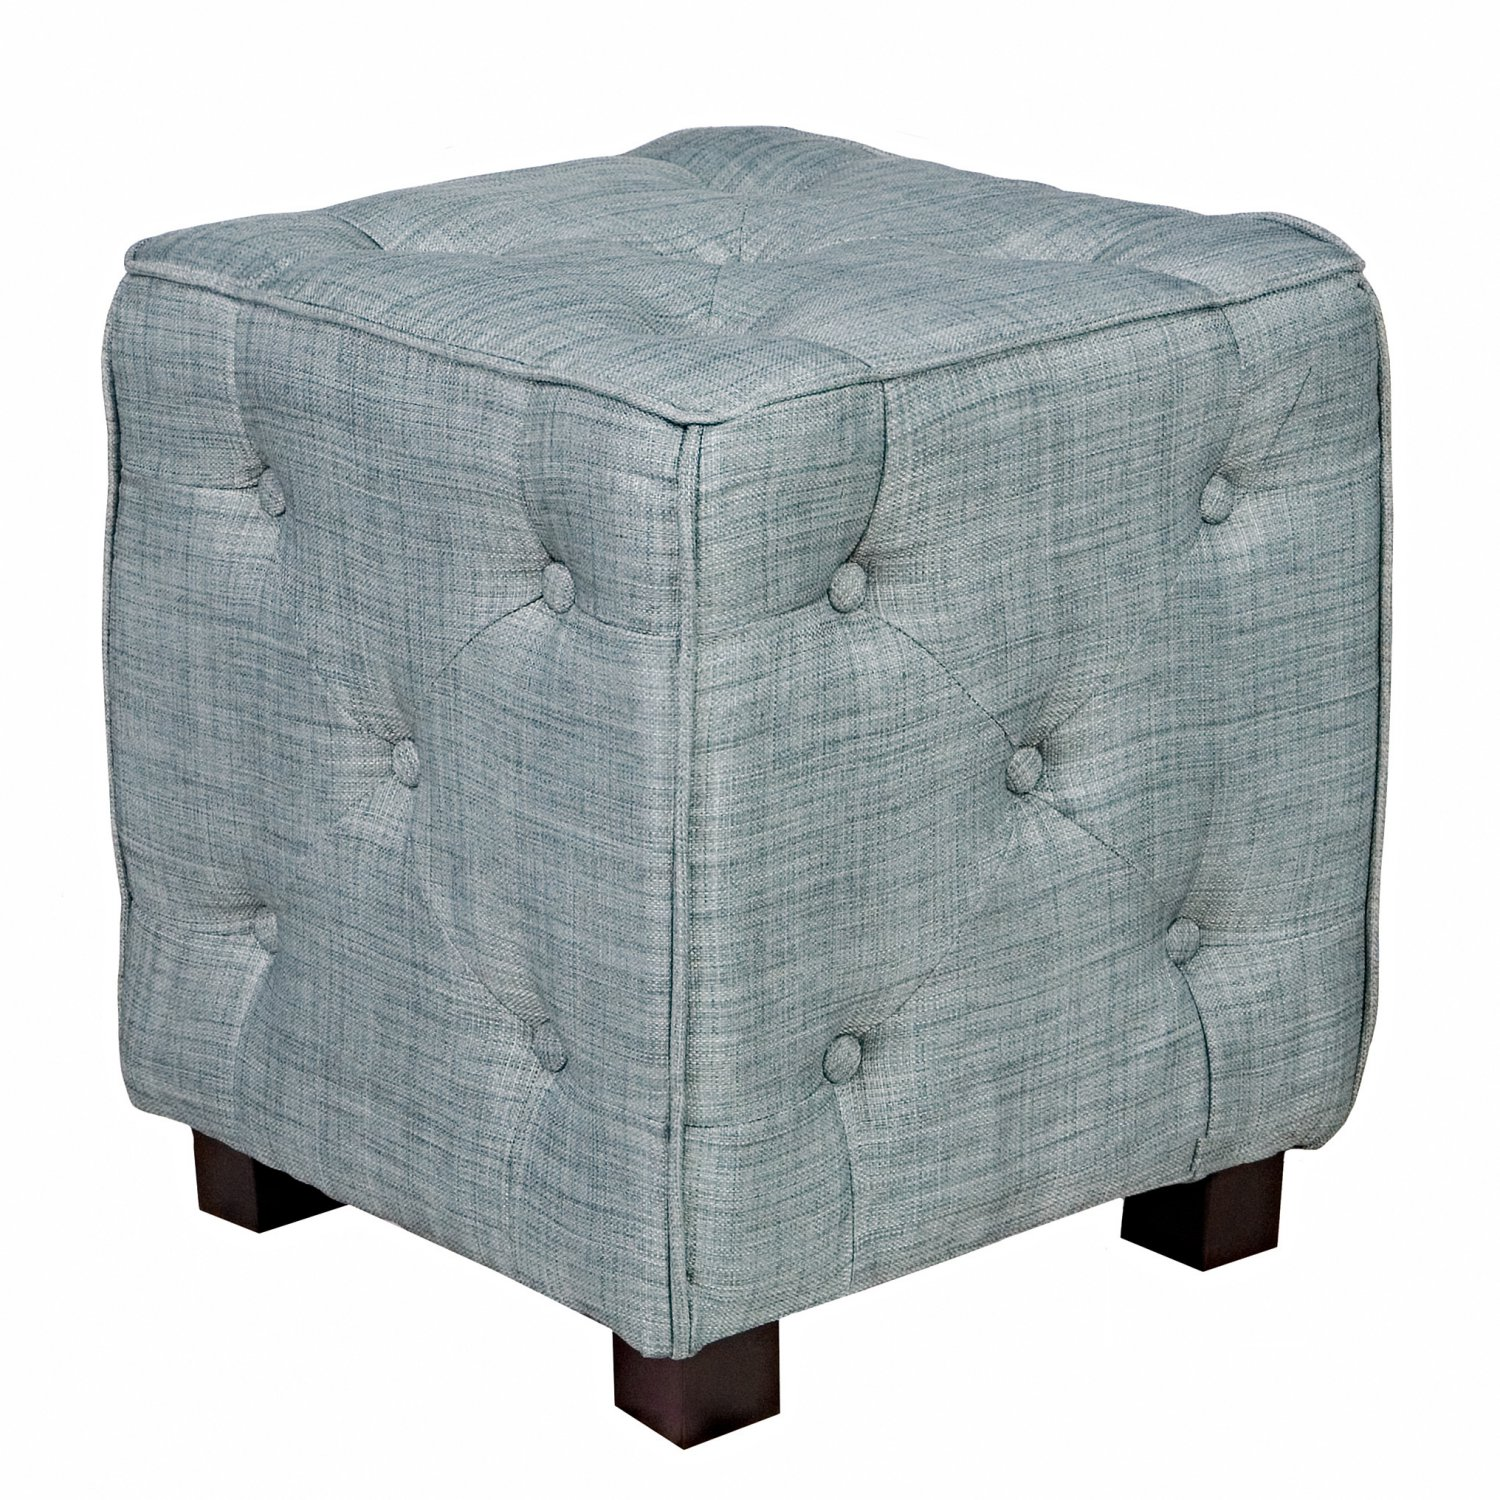 Misty Blue Small Tufted Cube Ottoman Family Room Seating